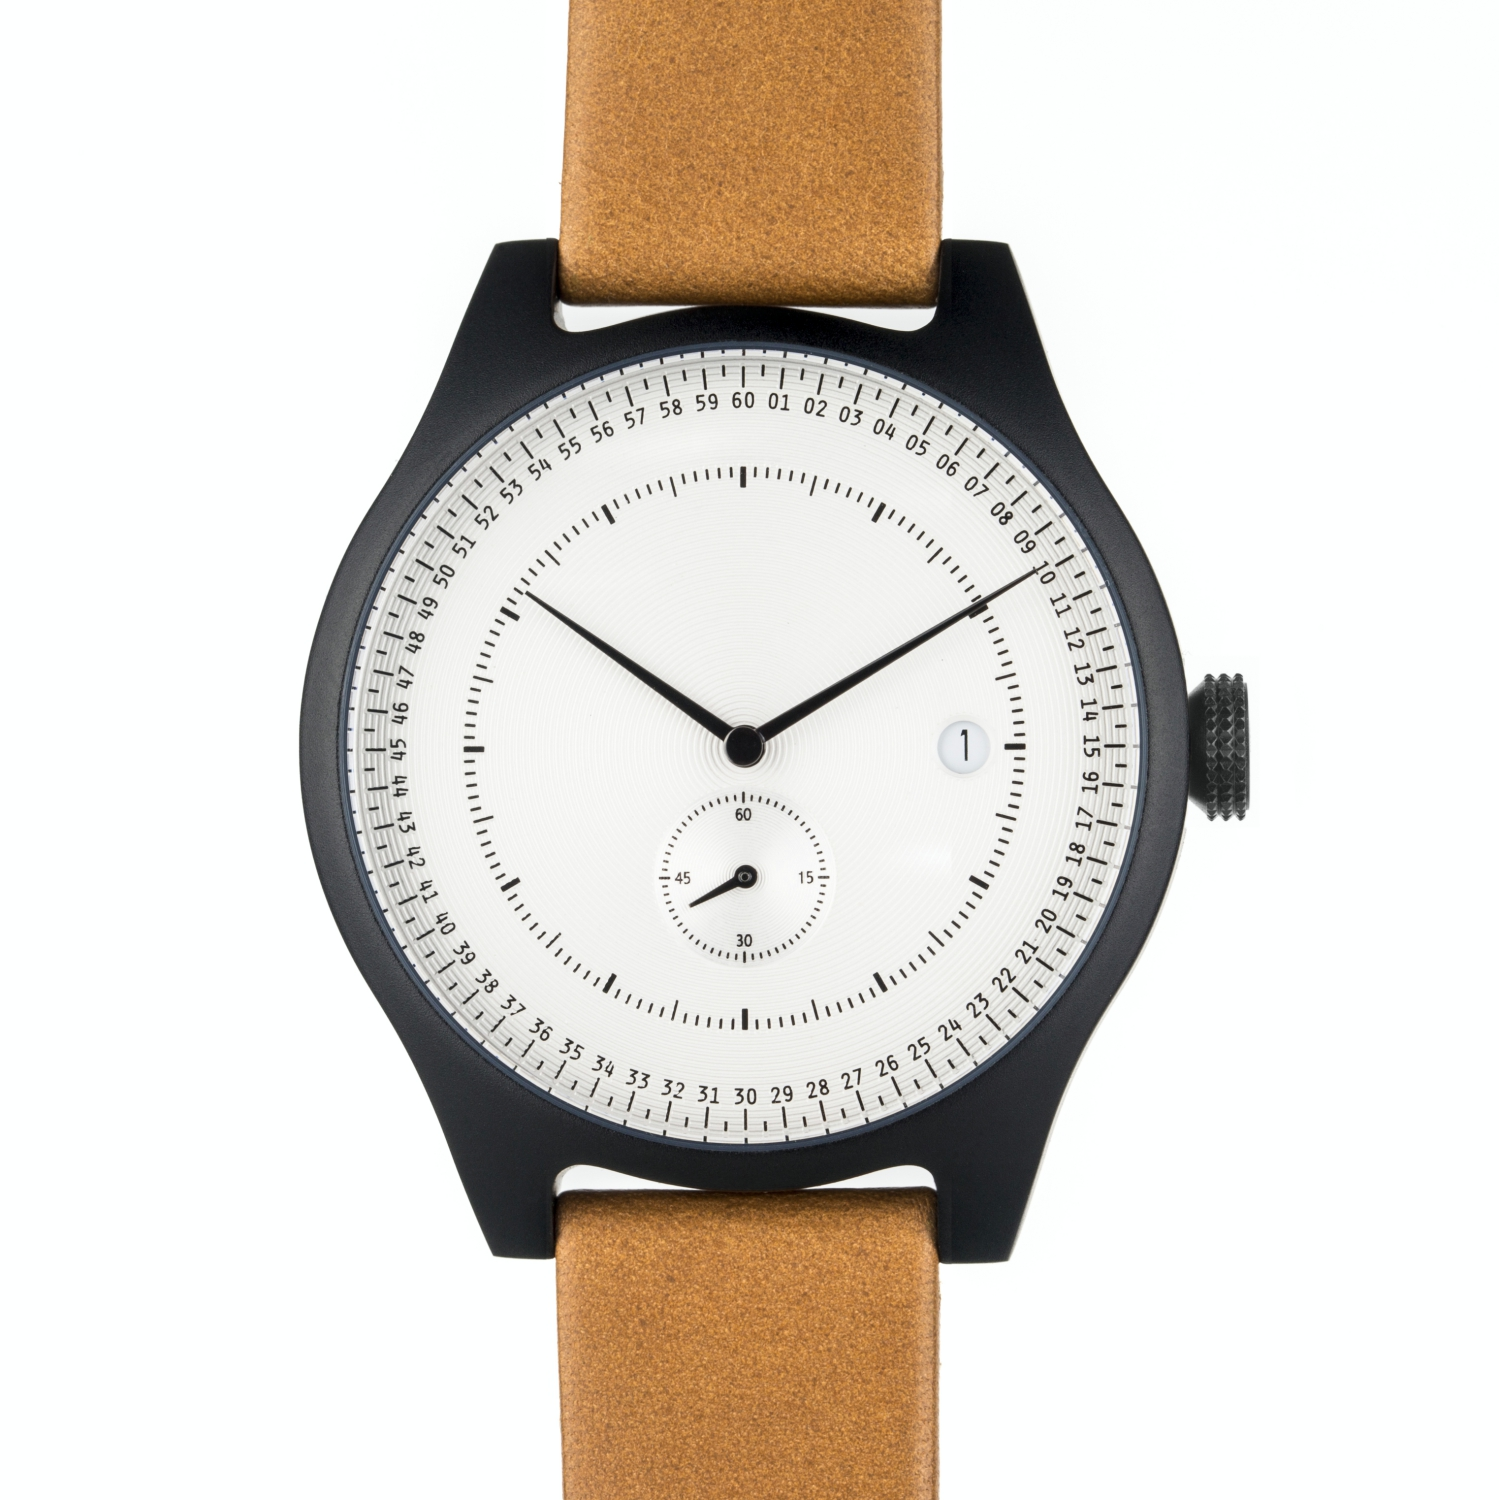 Squarestreet Watch